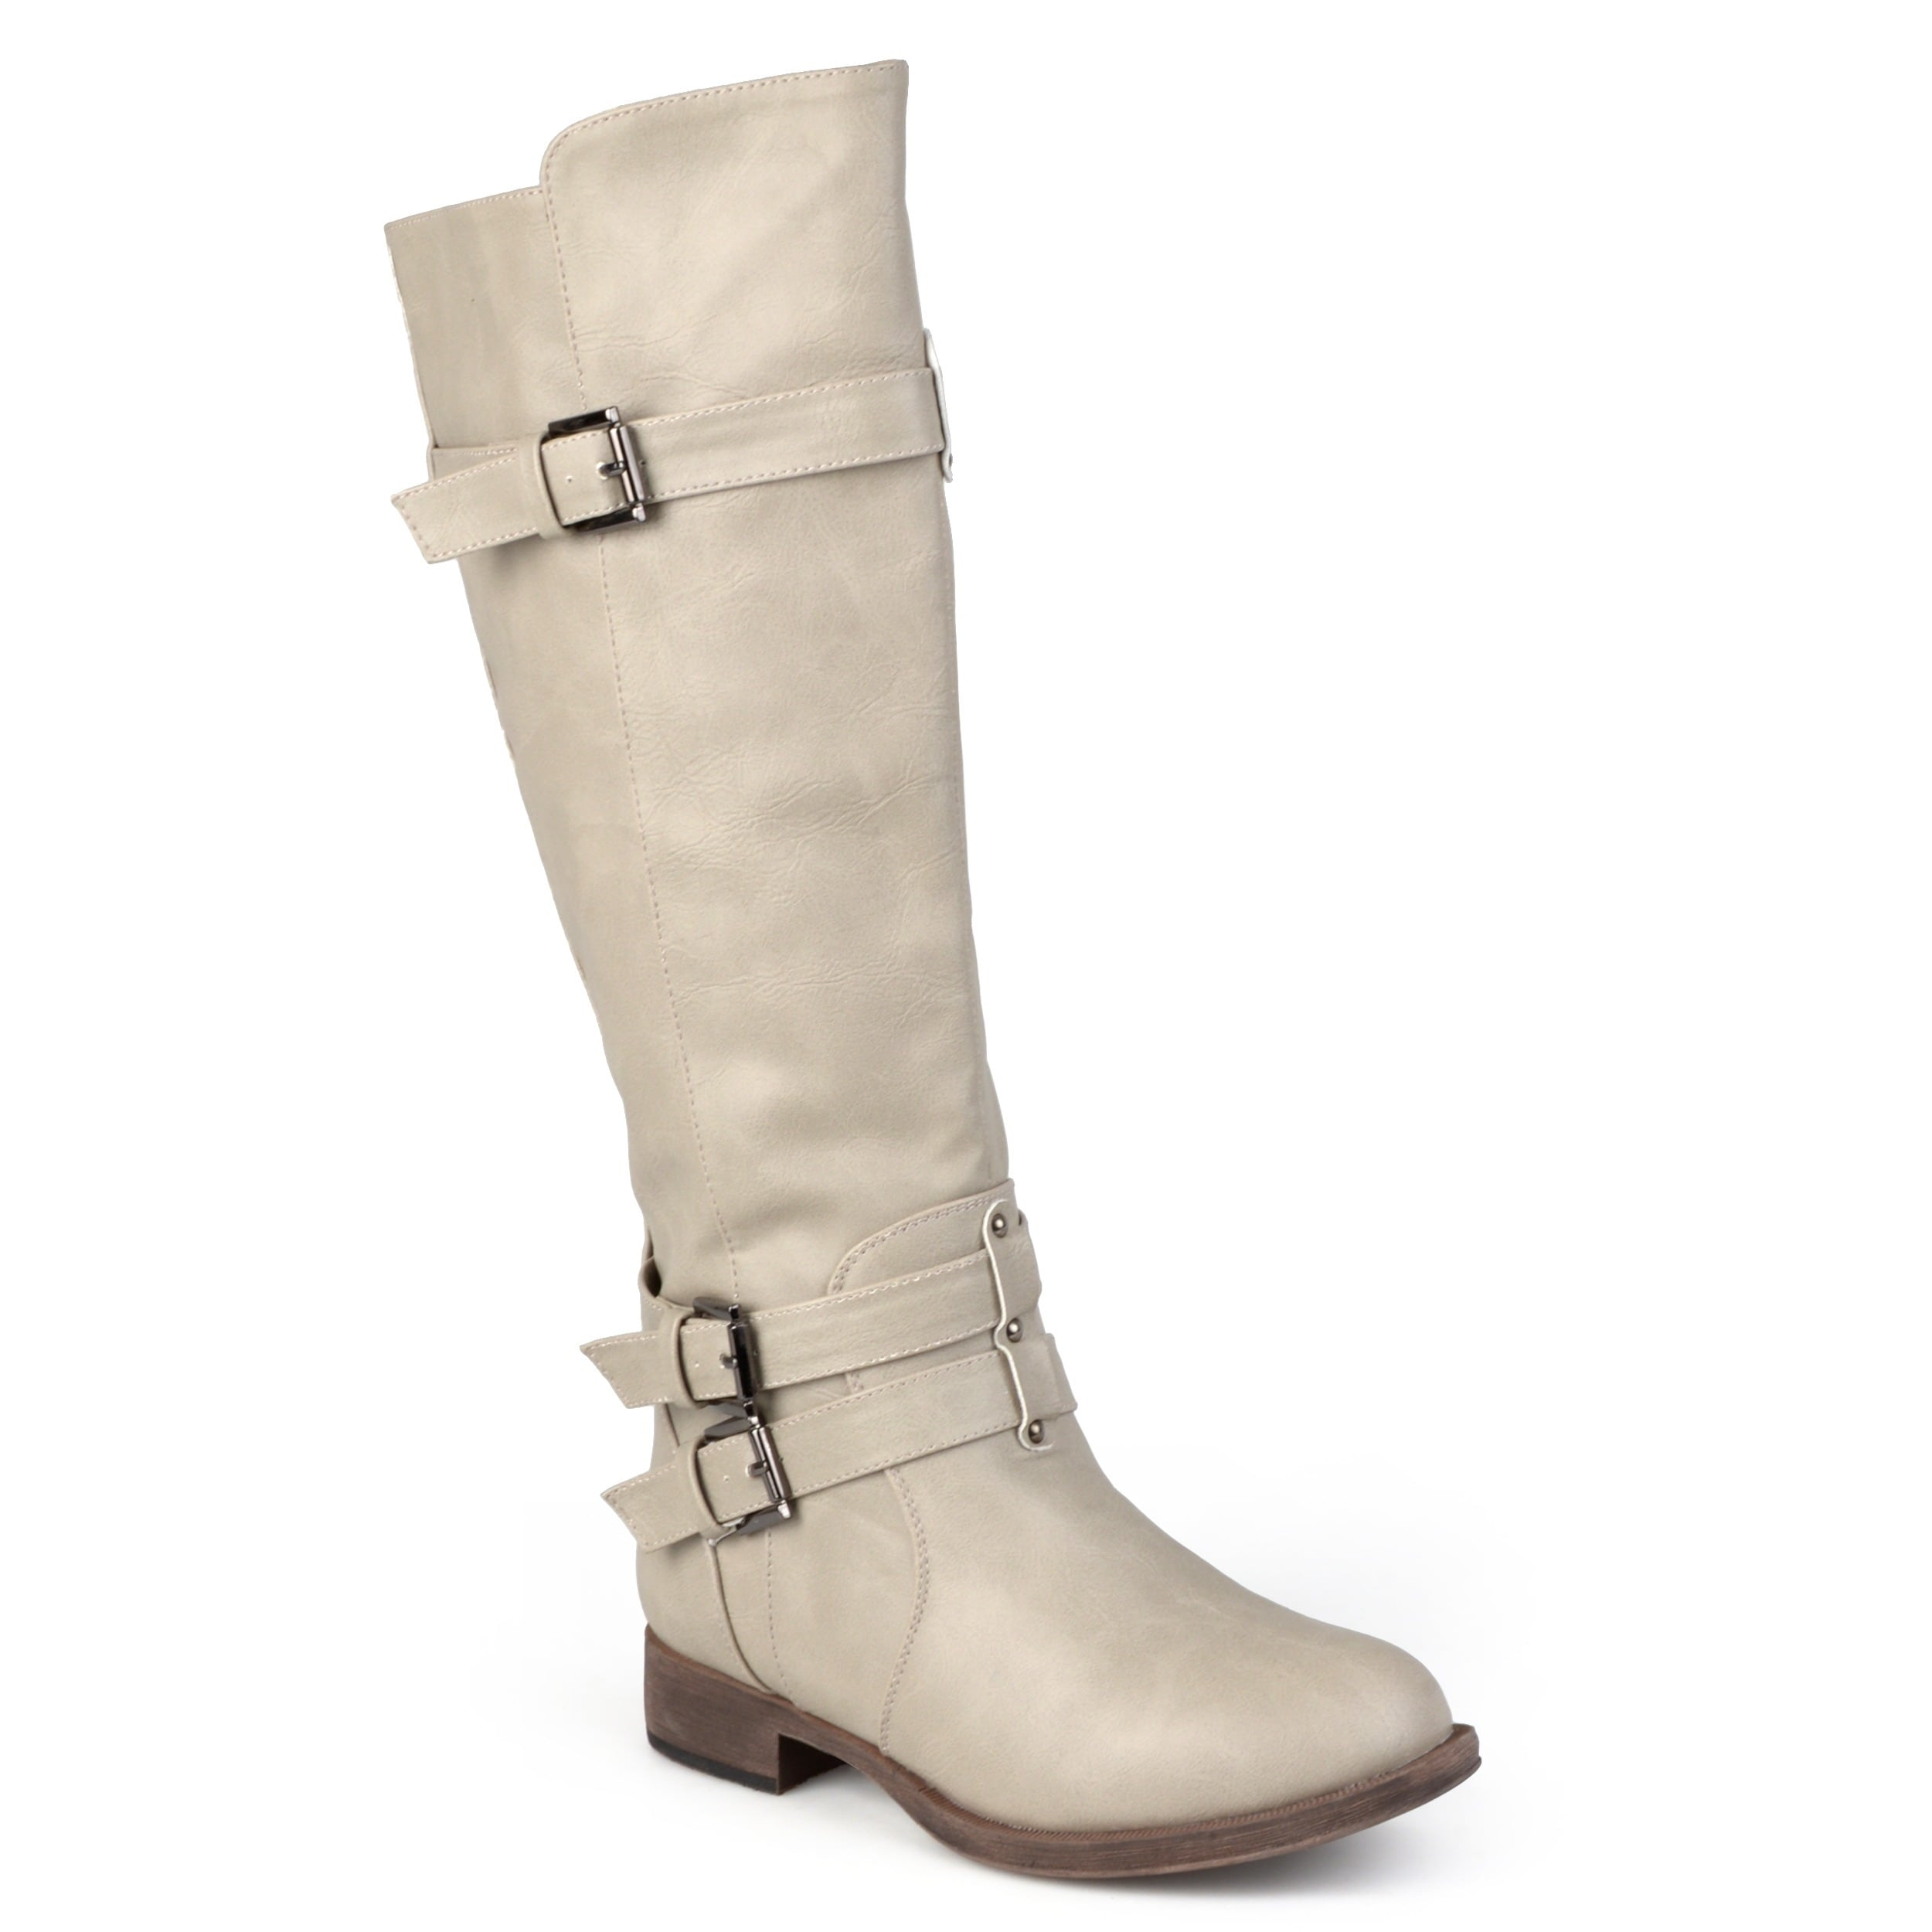 d8a5469afb49 Journee Collection Women s  Bite  Regular and Wide-calf Buckle Knee-high  Riding Boot